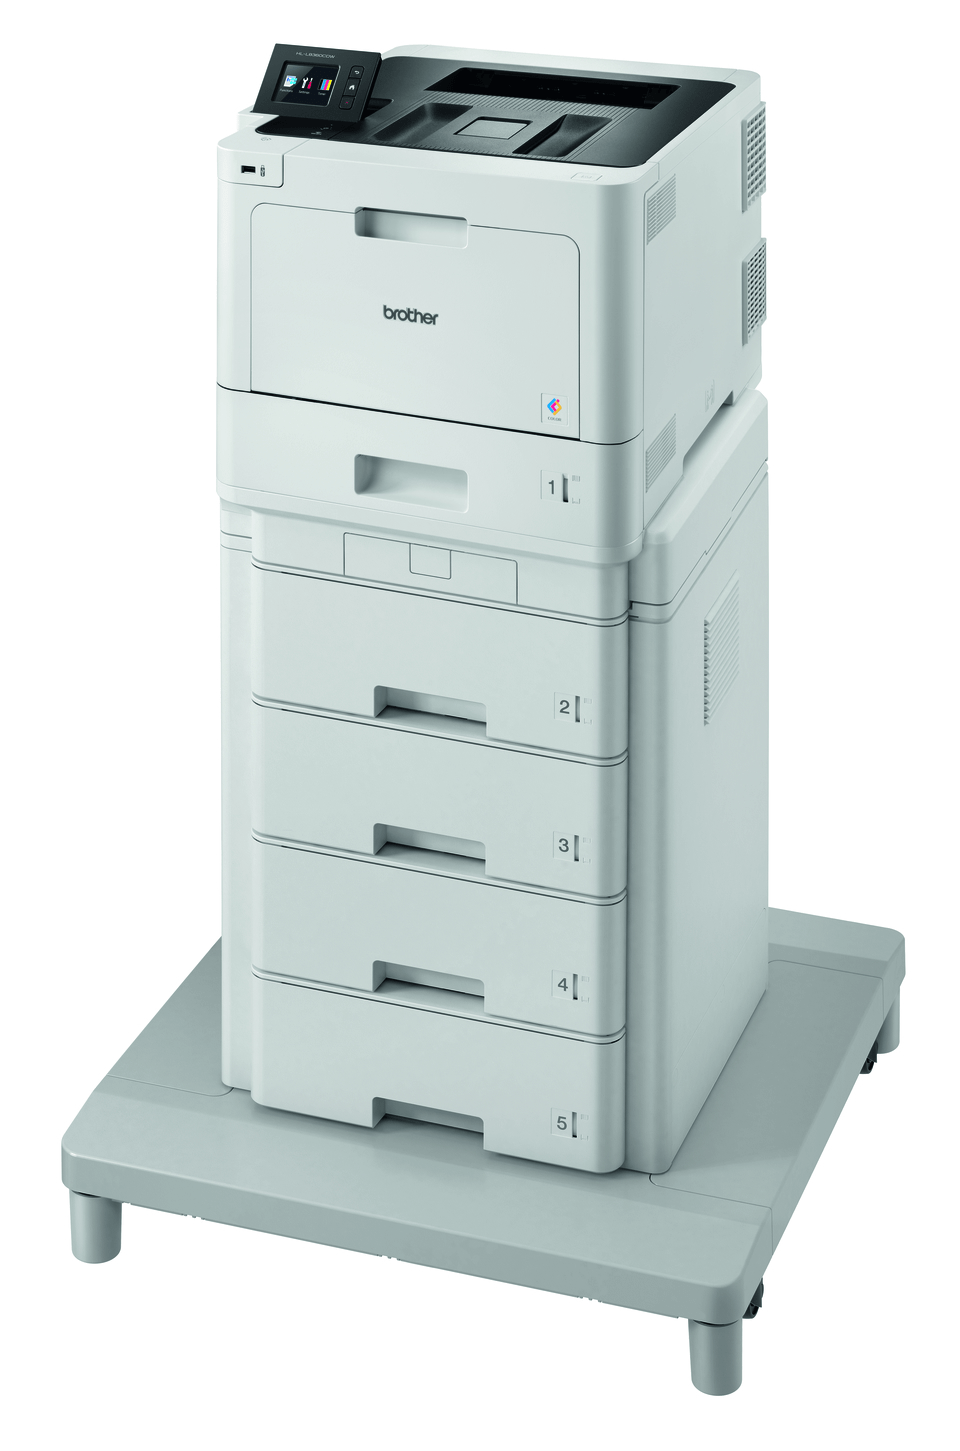 Brother HL-L8360CDWMT Professional Colour, Duplex, Wireless Laser Printer + Tower Tray + Tower Tray Connector 2